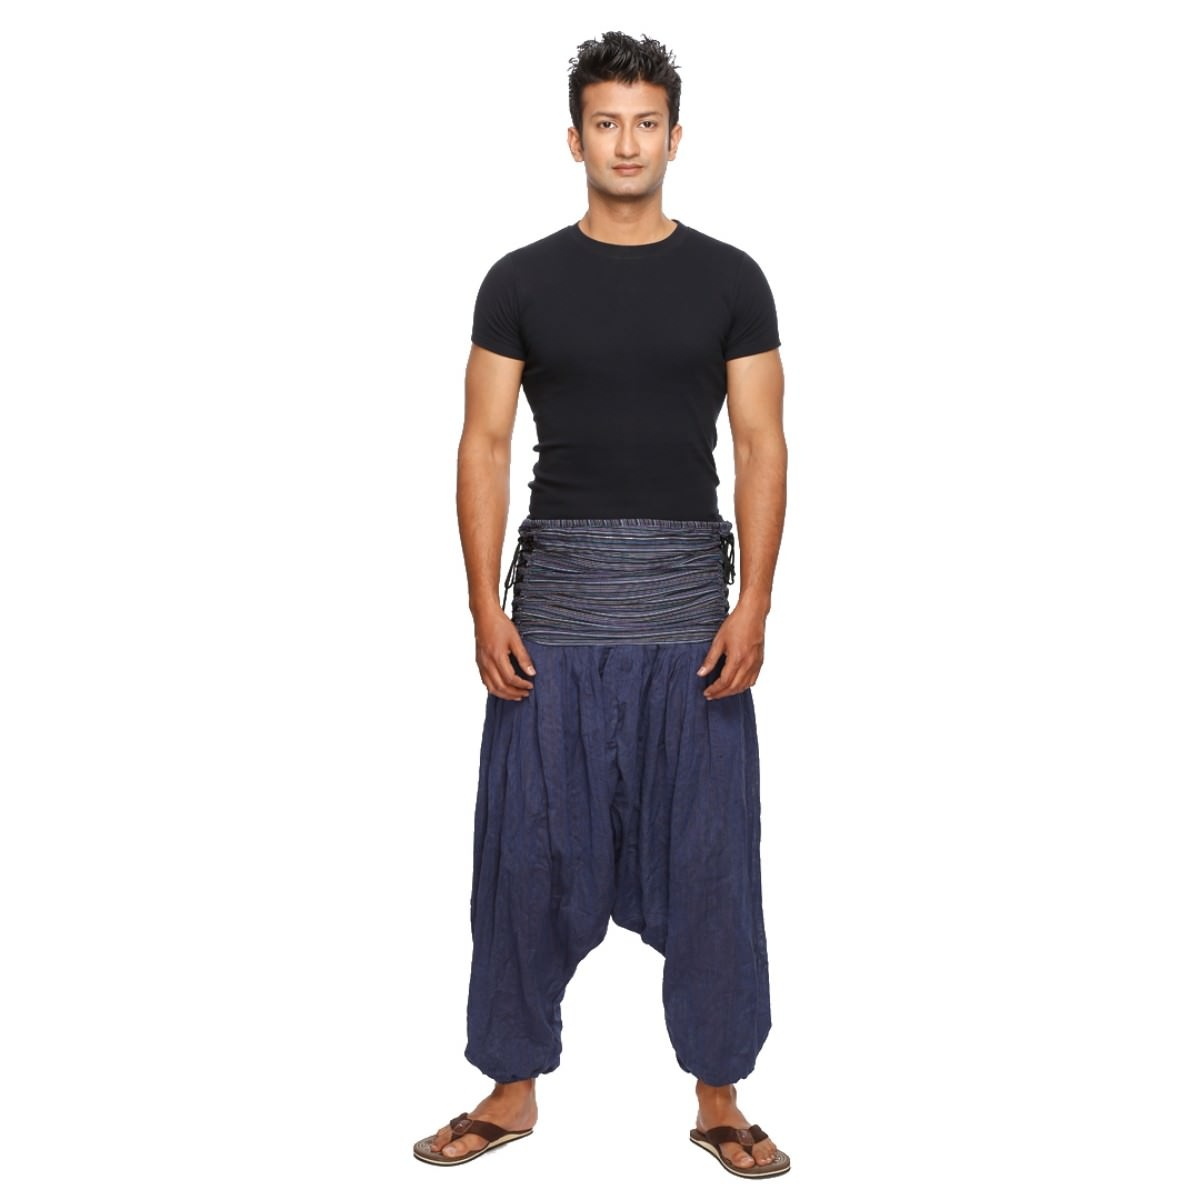 pantaloni harem pantaloni aladino a palloncino yoga goa sarouel baggy lacci jaya ebay. Black Bedroom Furniture Sets. Home Design Ideas